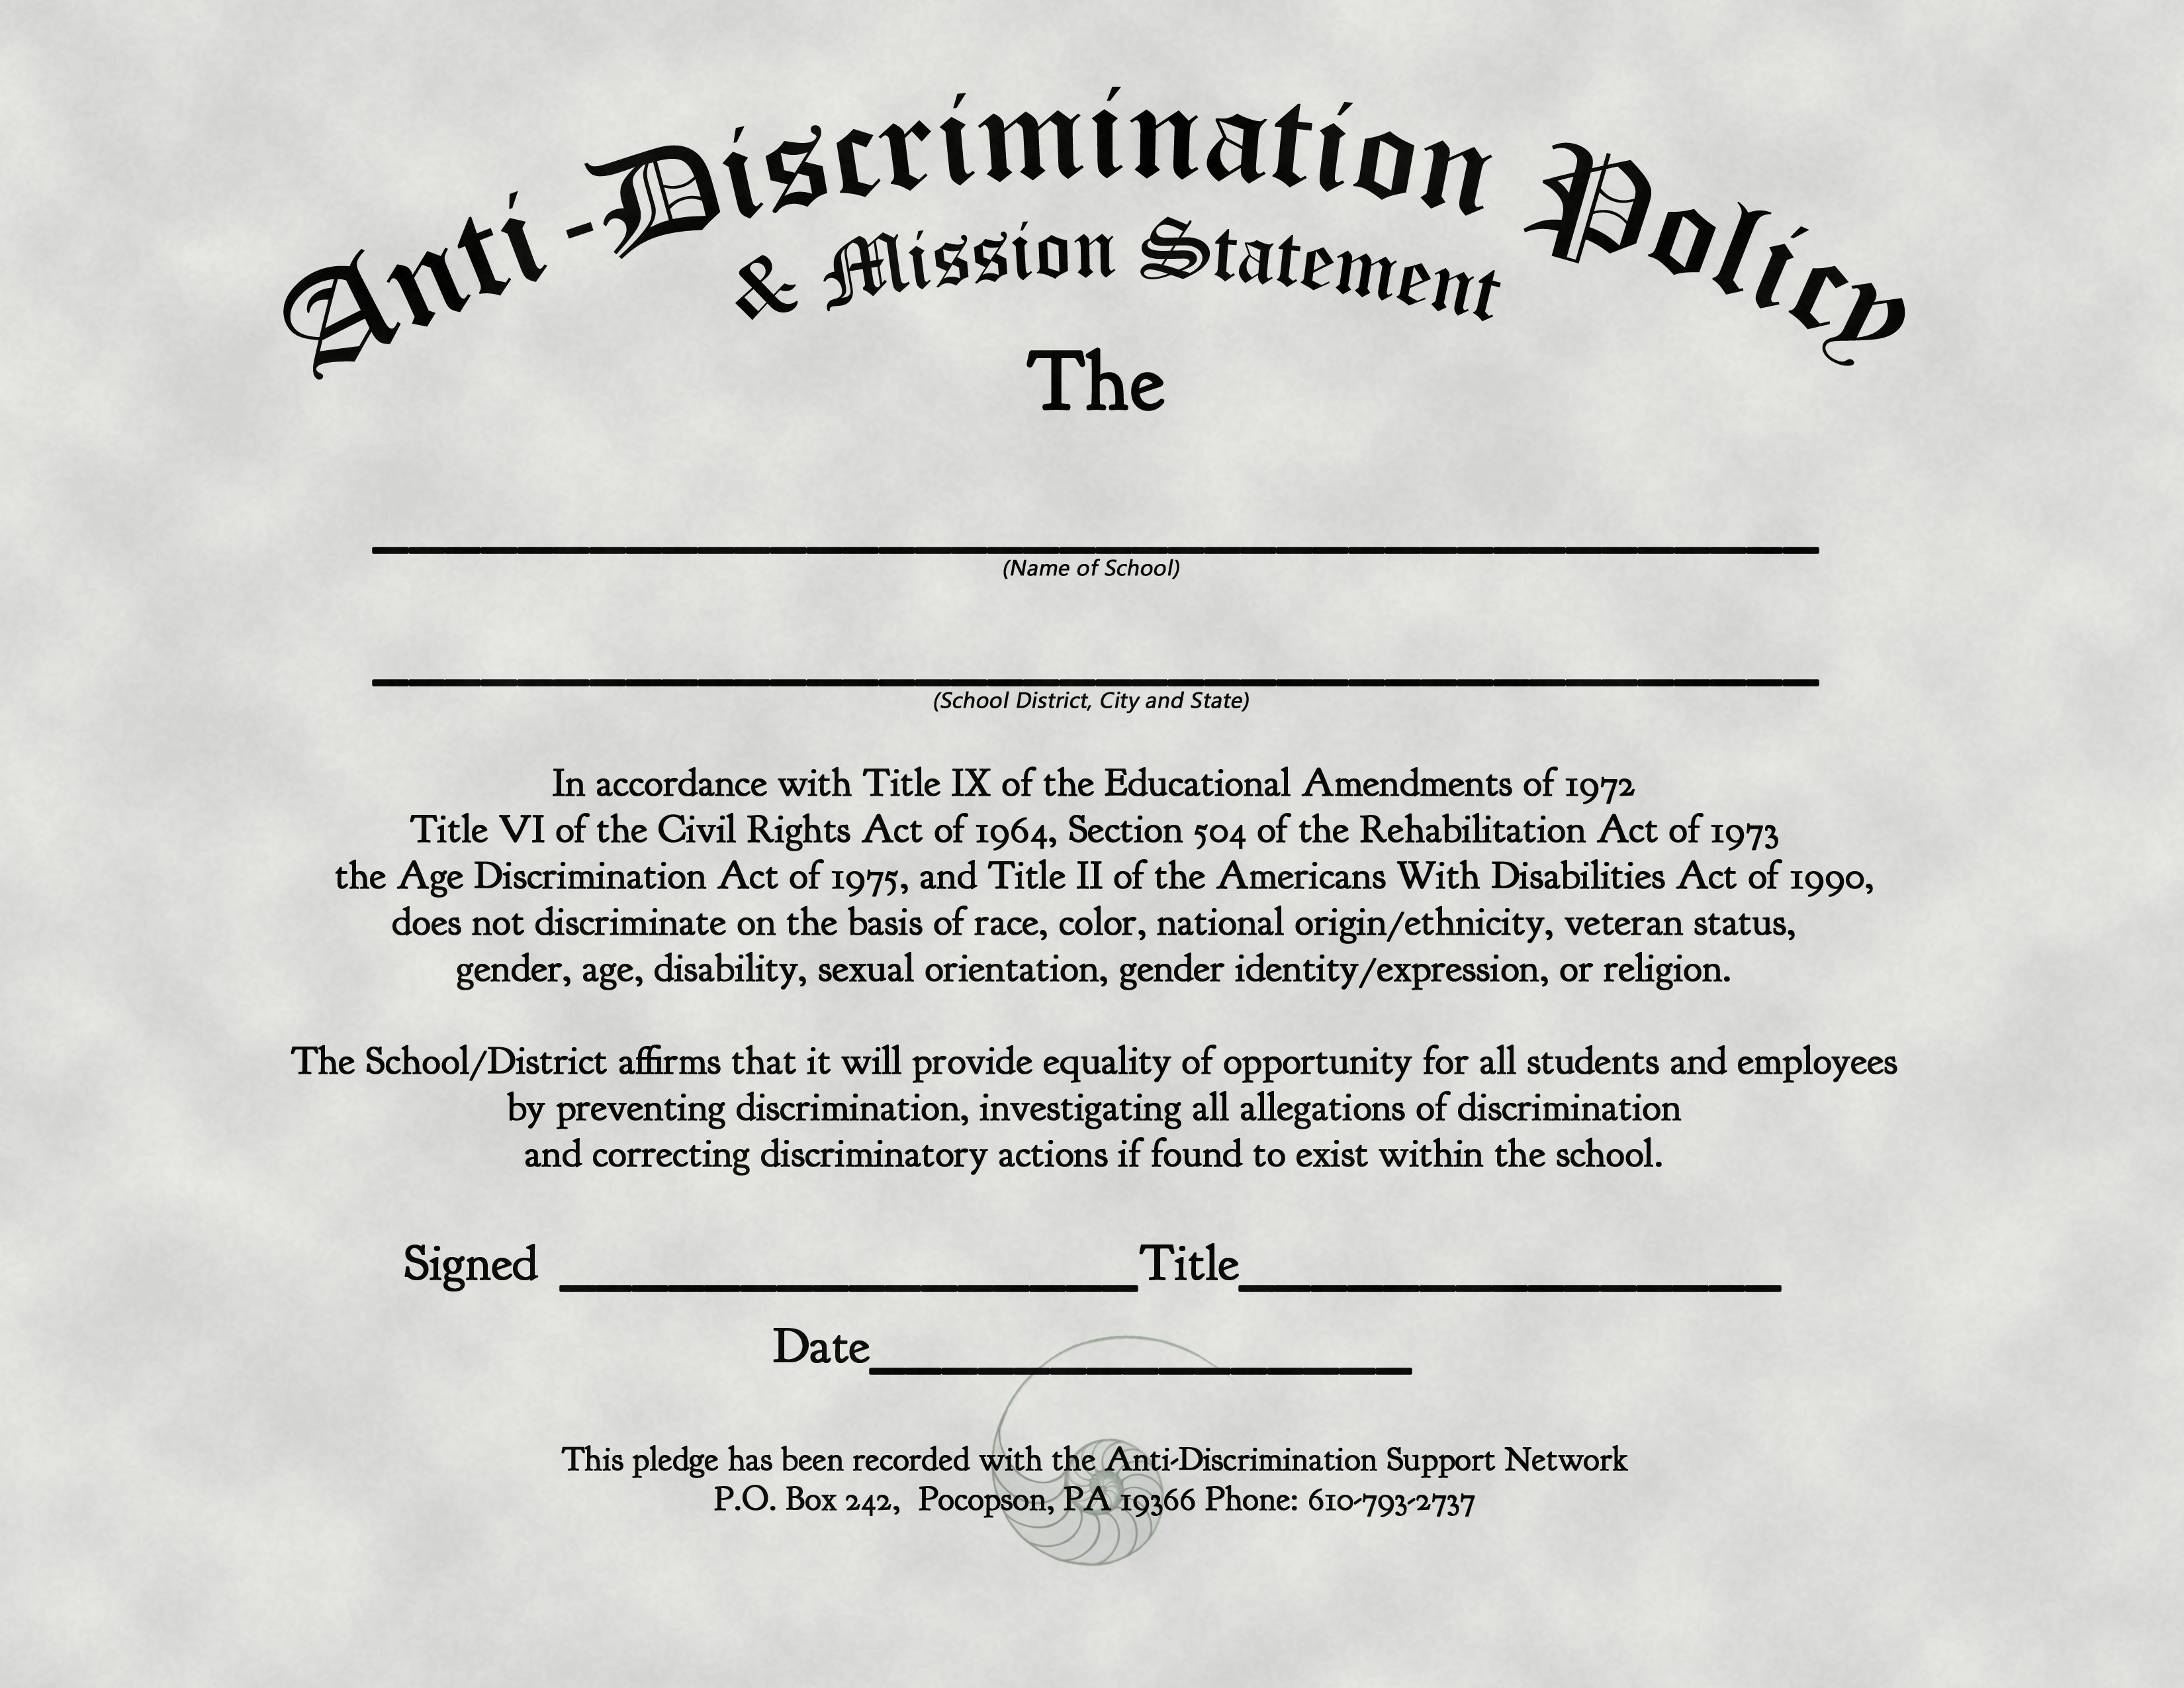 Anti-Discrimination Policy & Mission Statement « The